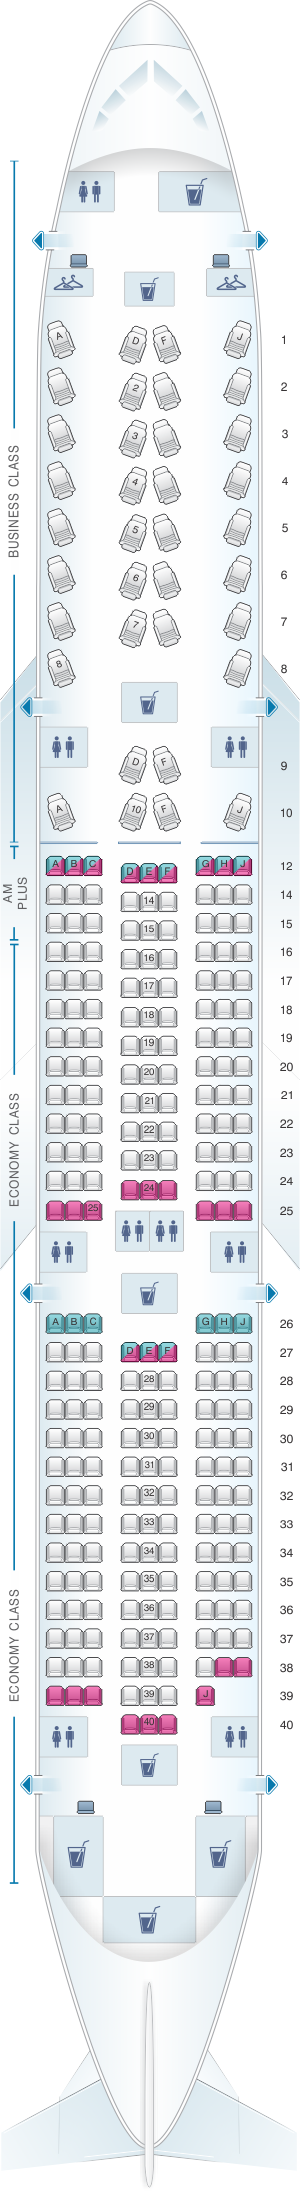 Seat map for Aeromexico Boeing B787-9